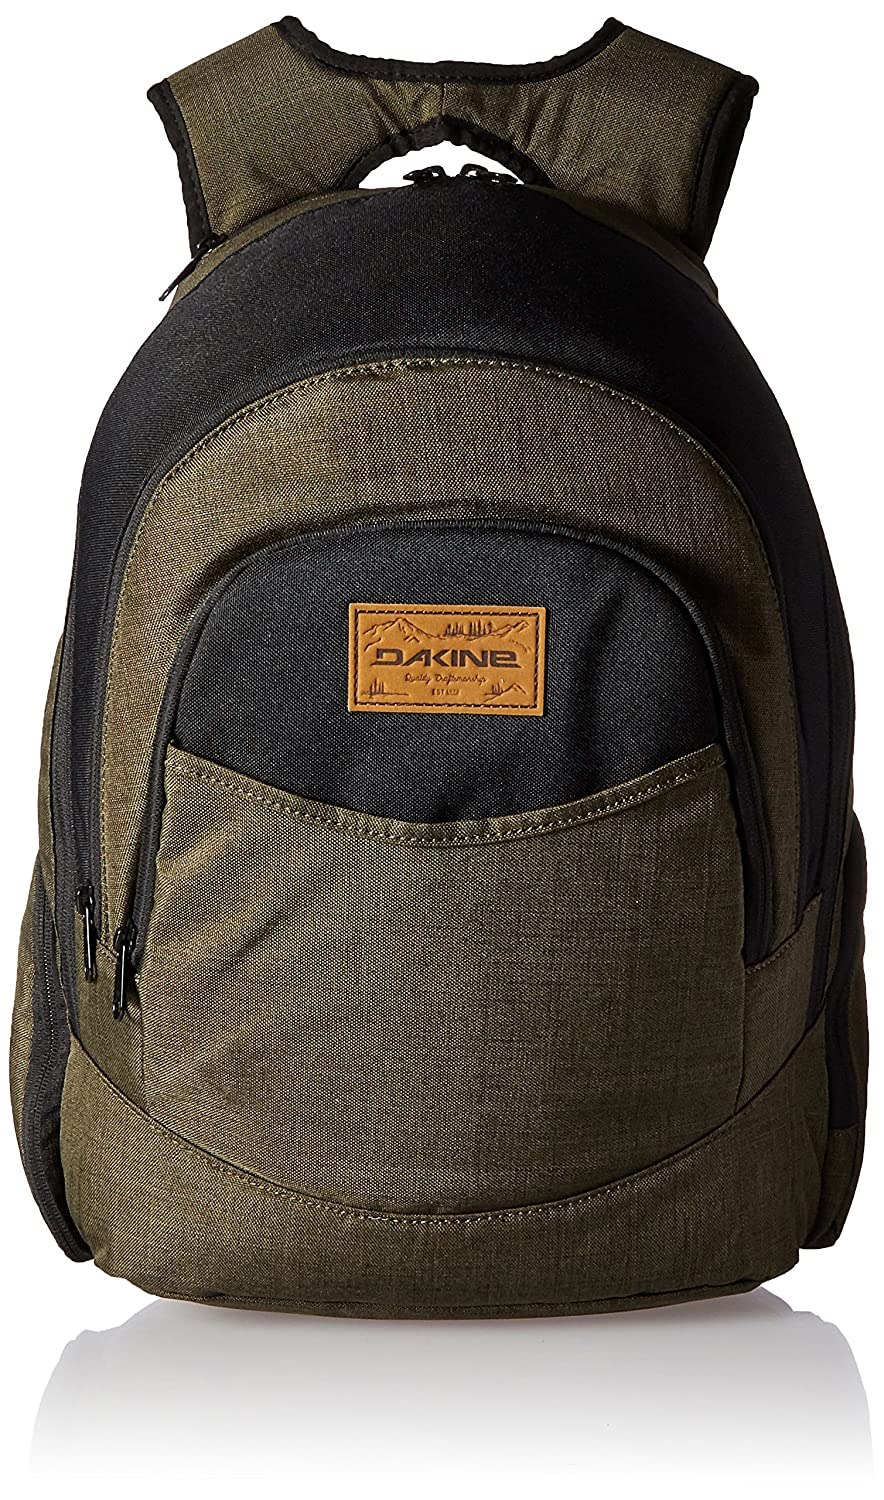 Dakine Prom Women\'s Outdoor Backpack: Amazon.co.uk: Sports & Outdoors